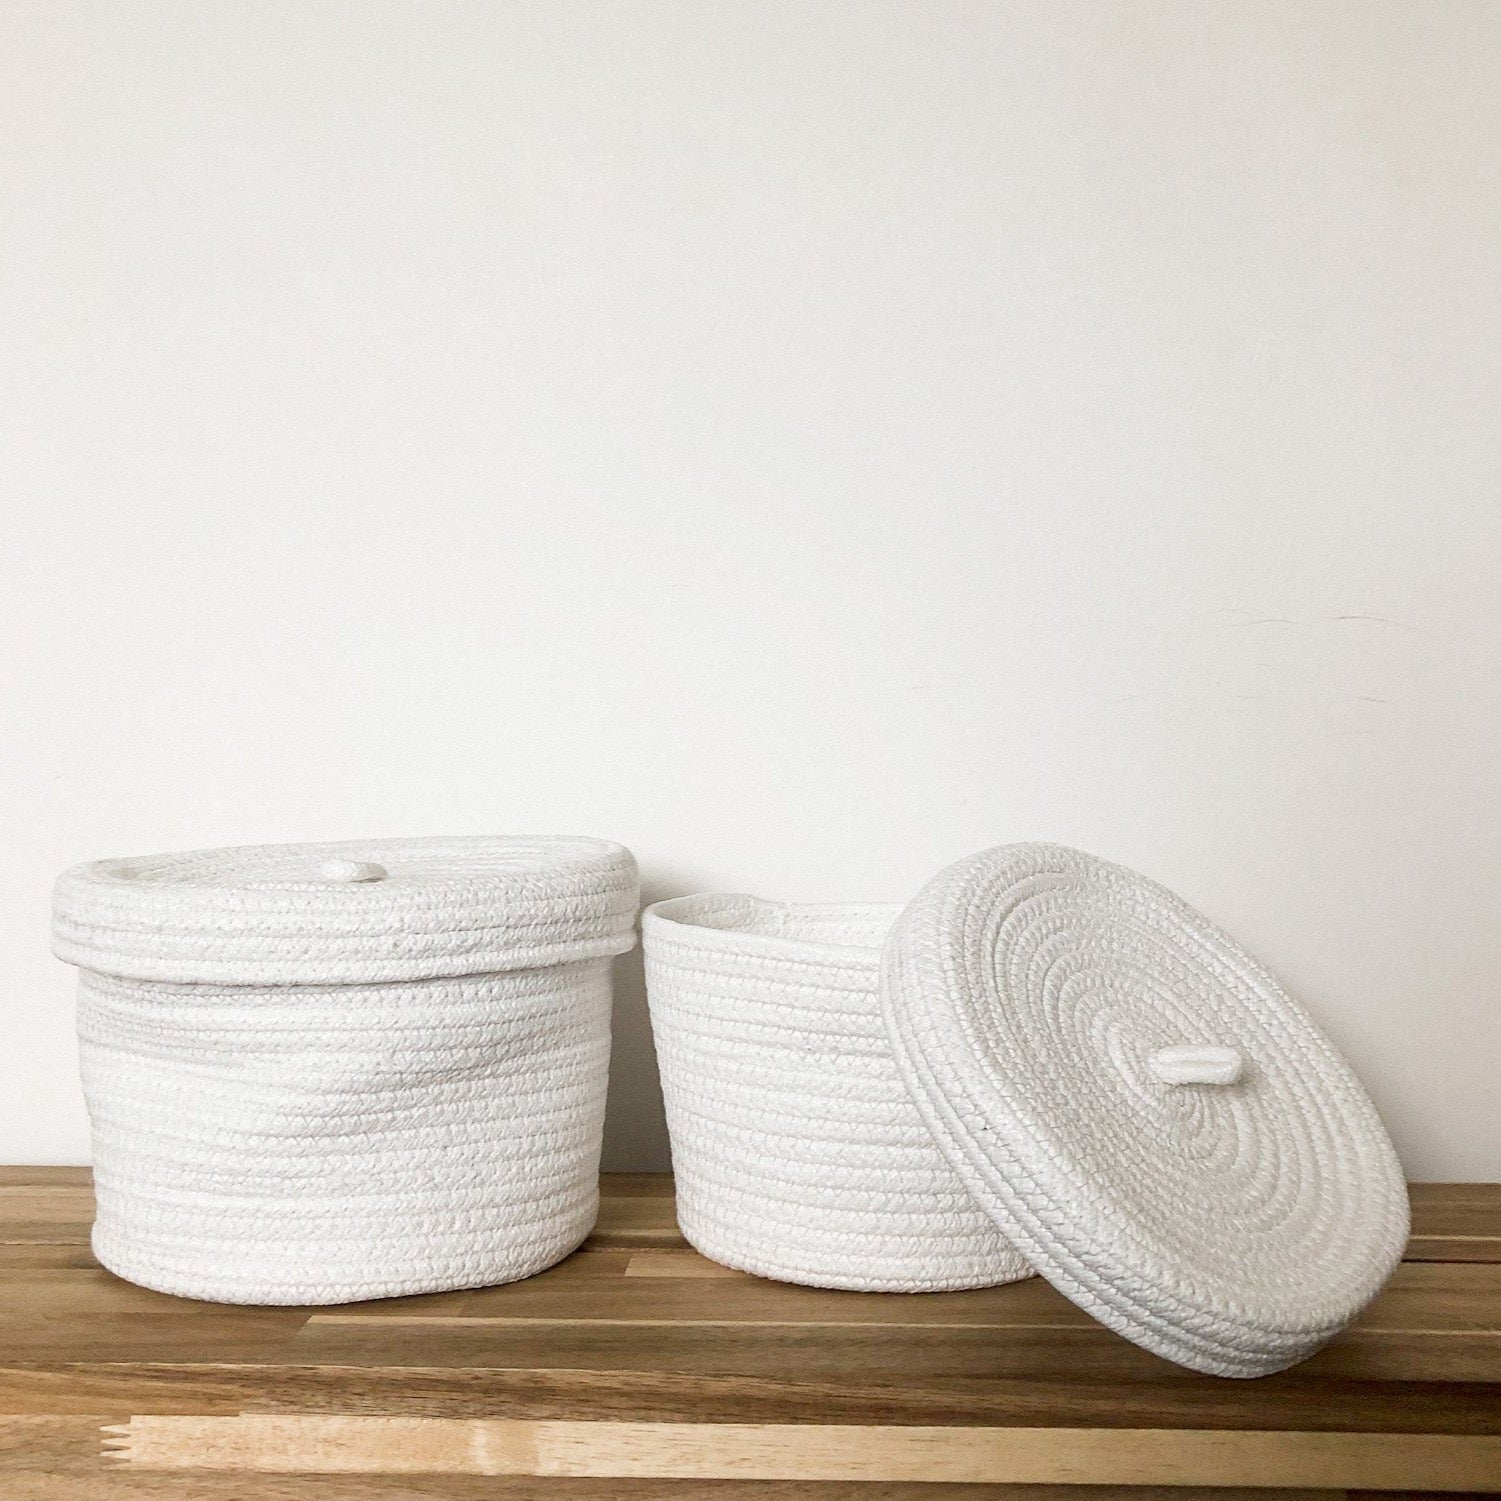 Set of 2 White Recycled Lidded Basket